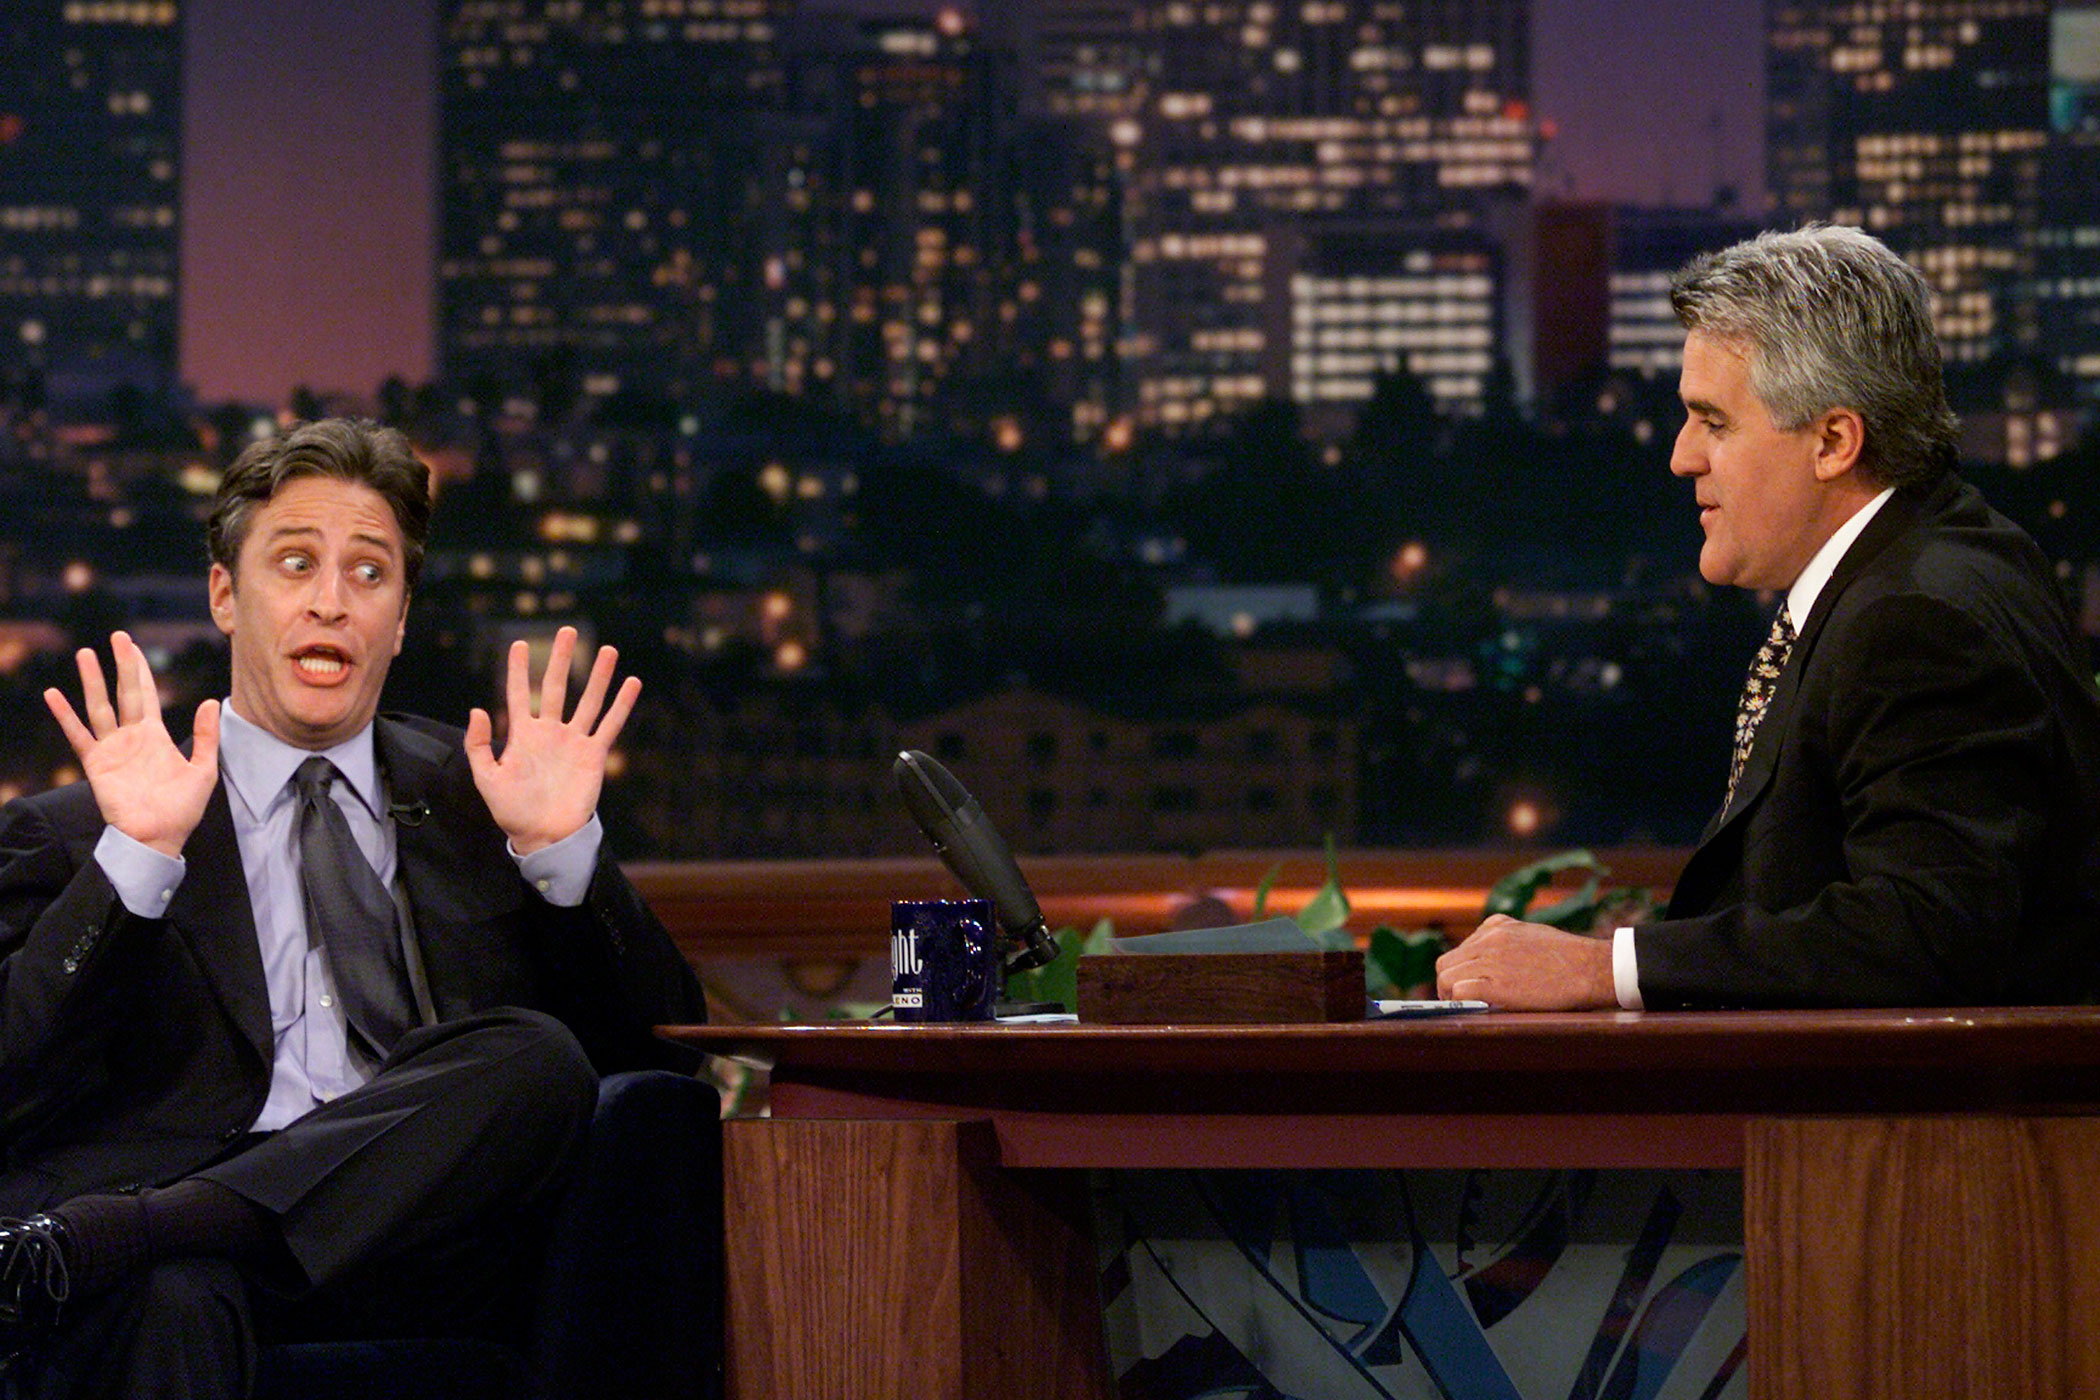 Jay Leno interviews Jon Stewart on <i>The Tonight Show With Jay Leno</i> in 2000.